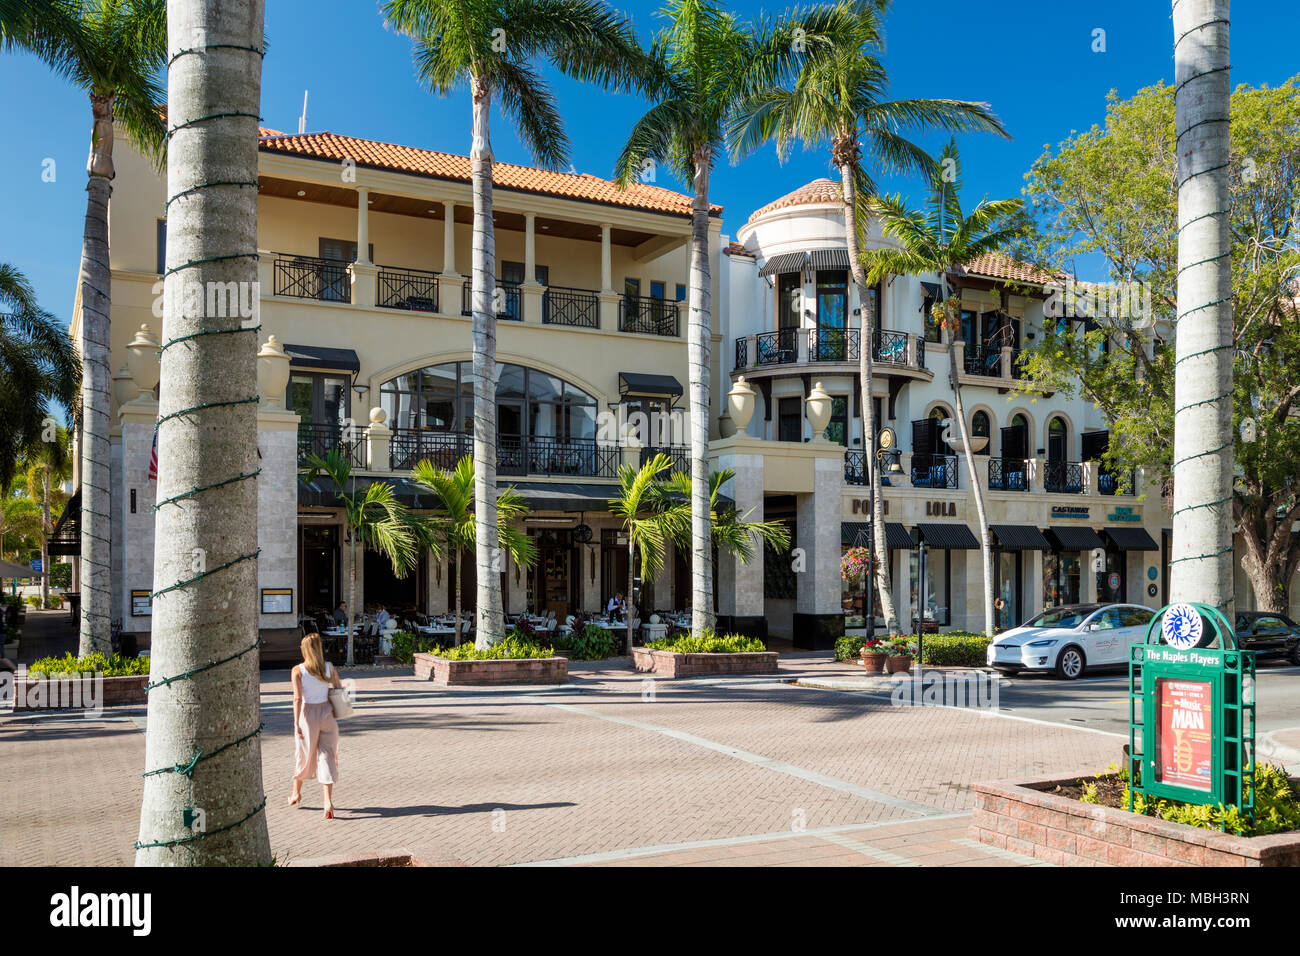 Shops and businesses along 5th Avenue, Naples, Florida, USA - Stock Image